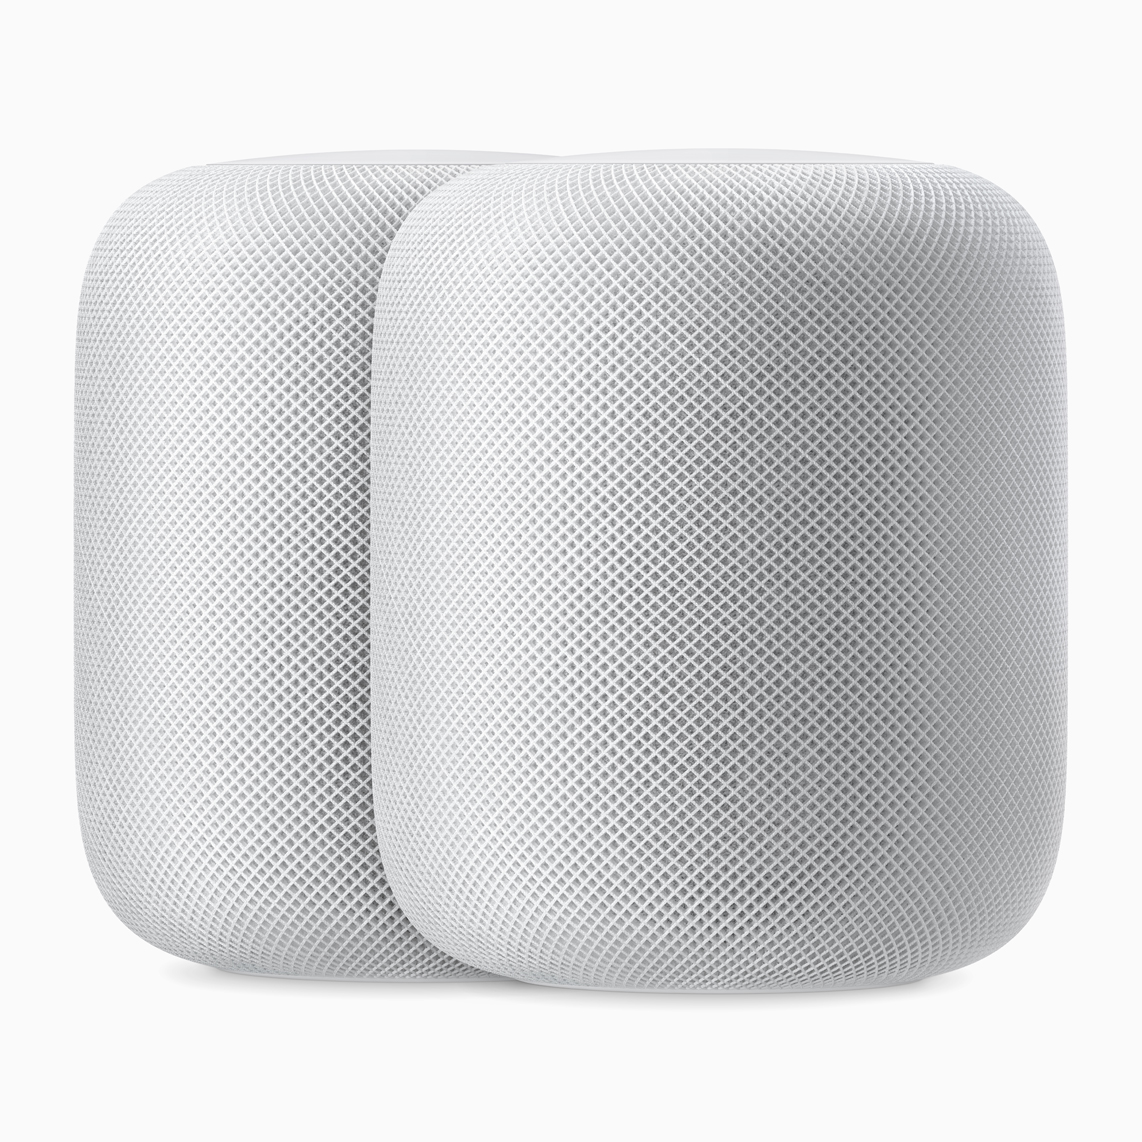 Apple's HomePod Speaker to Launch in Japan and Taiwan on August 23, Pre-Orders Available Now